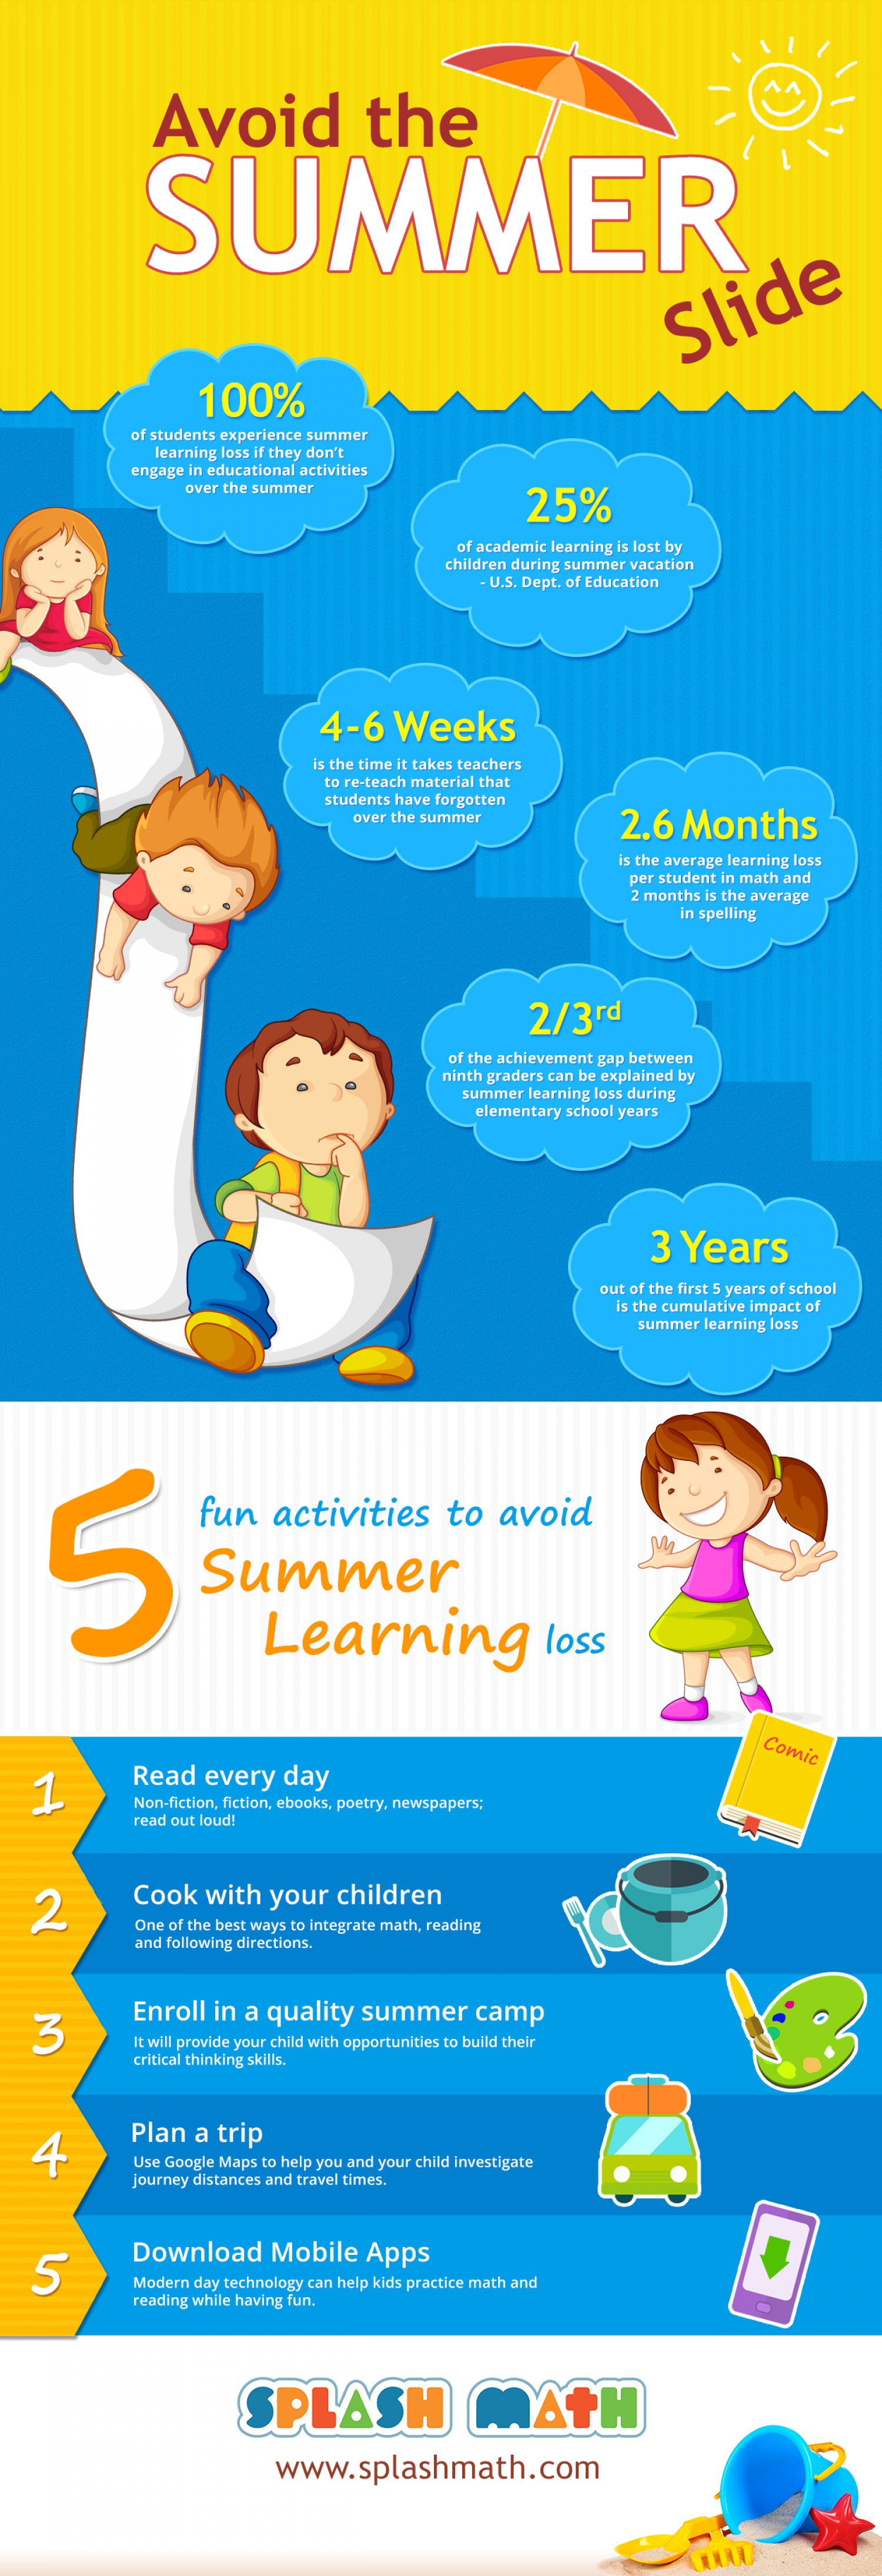 Save Your Child From Summer Learning Loss - Infographic